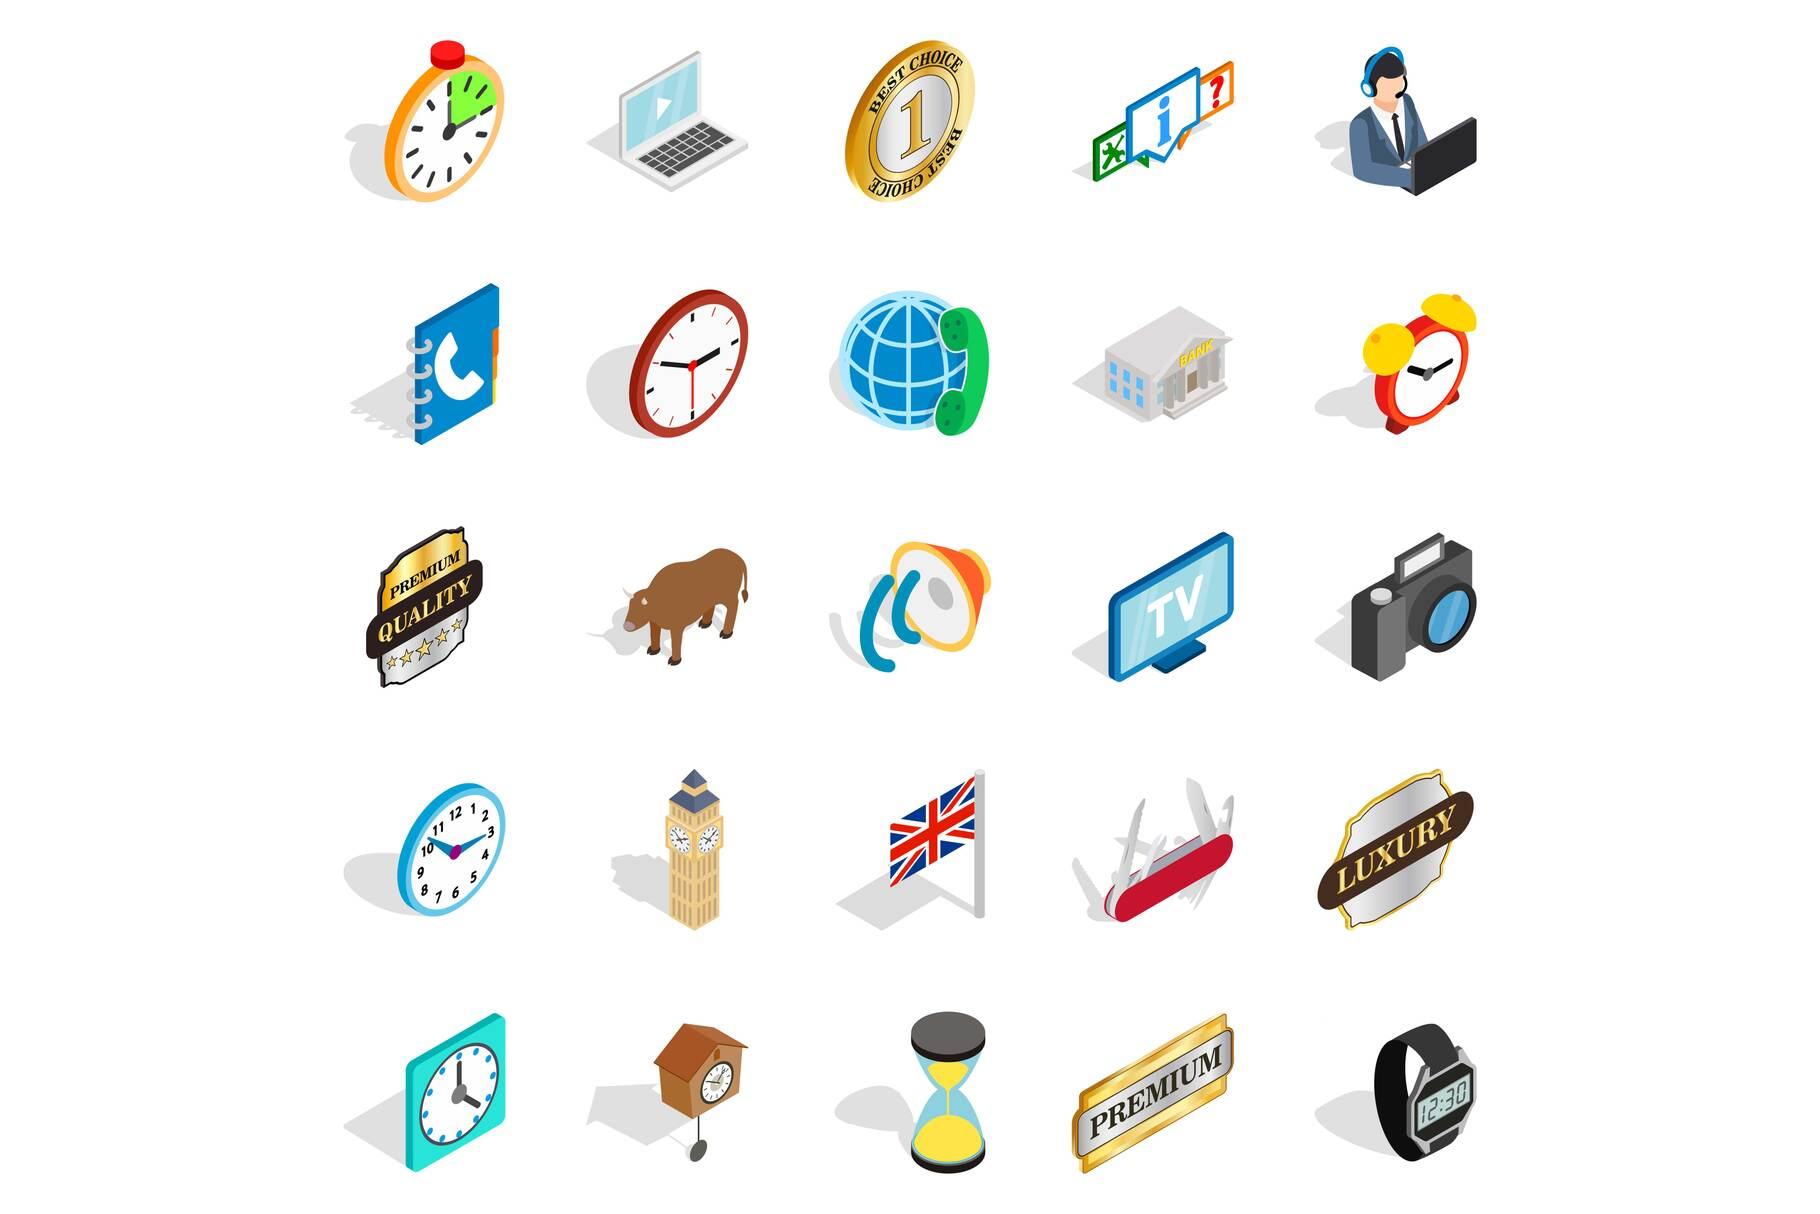 Time period icons set, isometric style example image 1